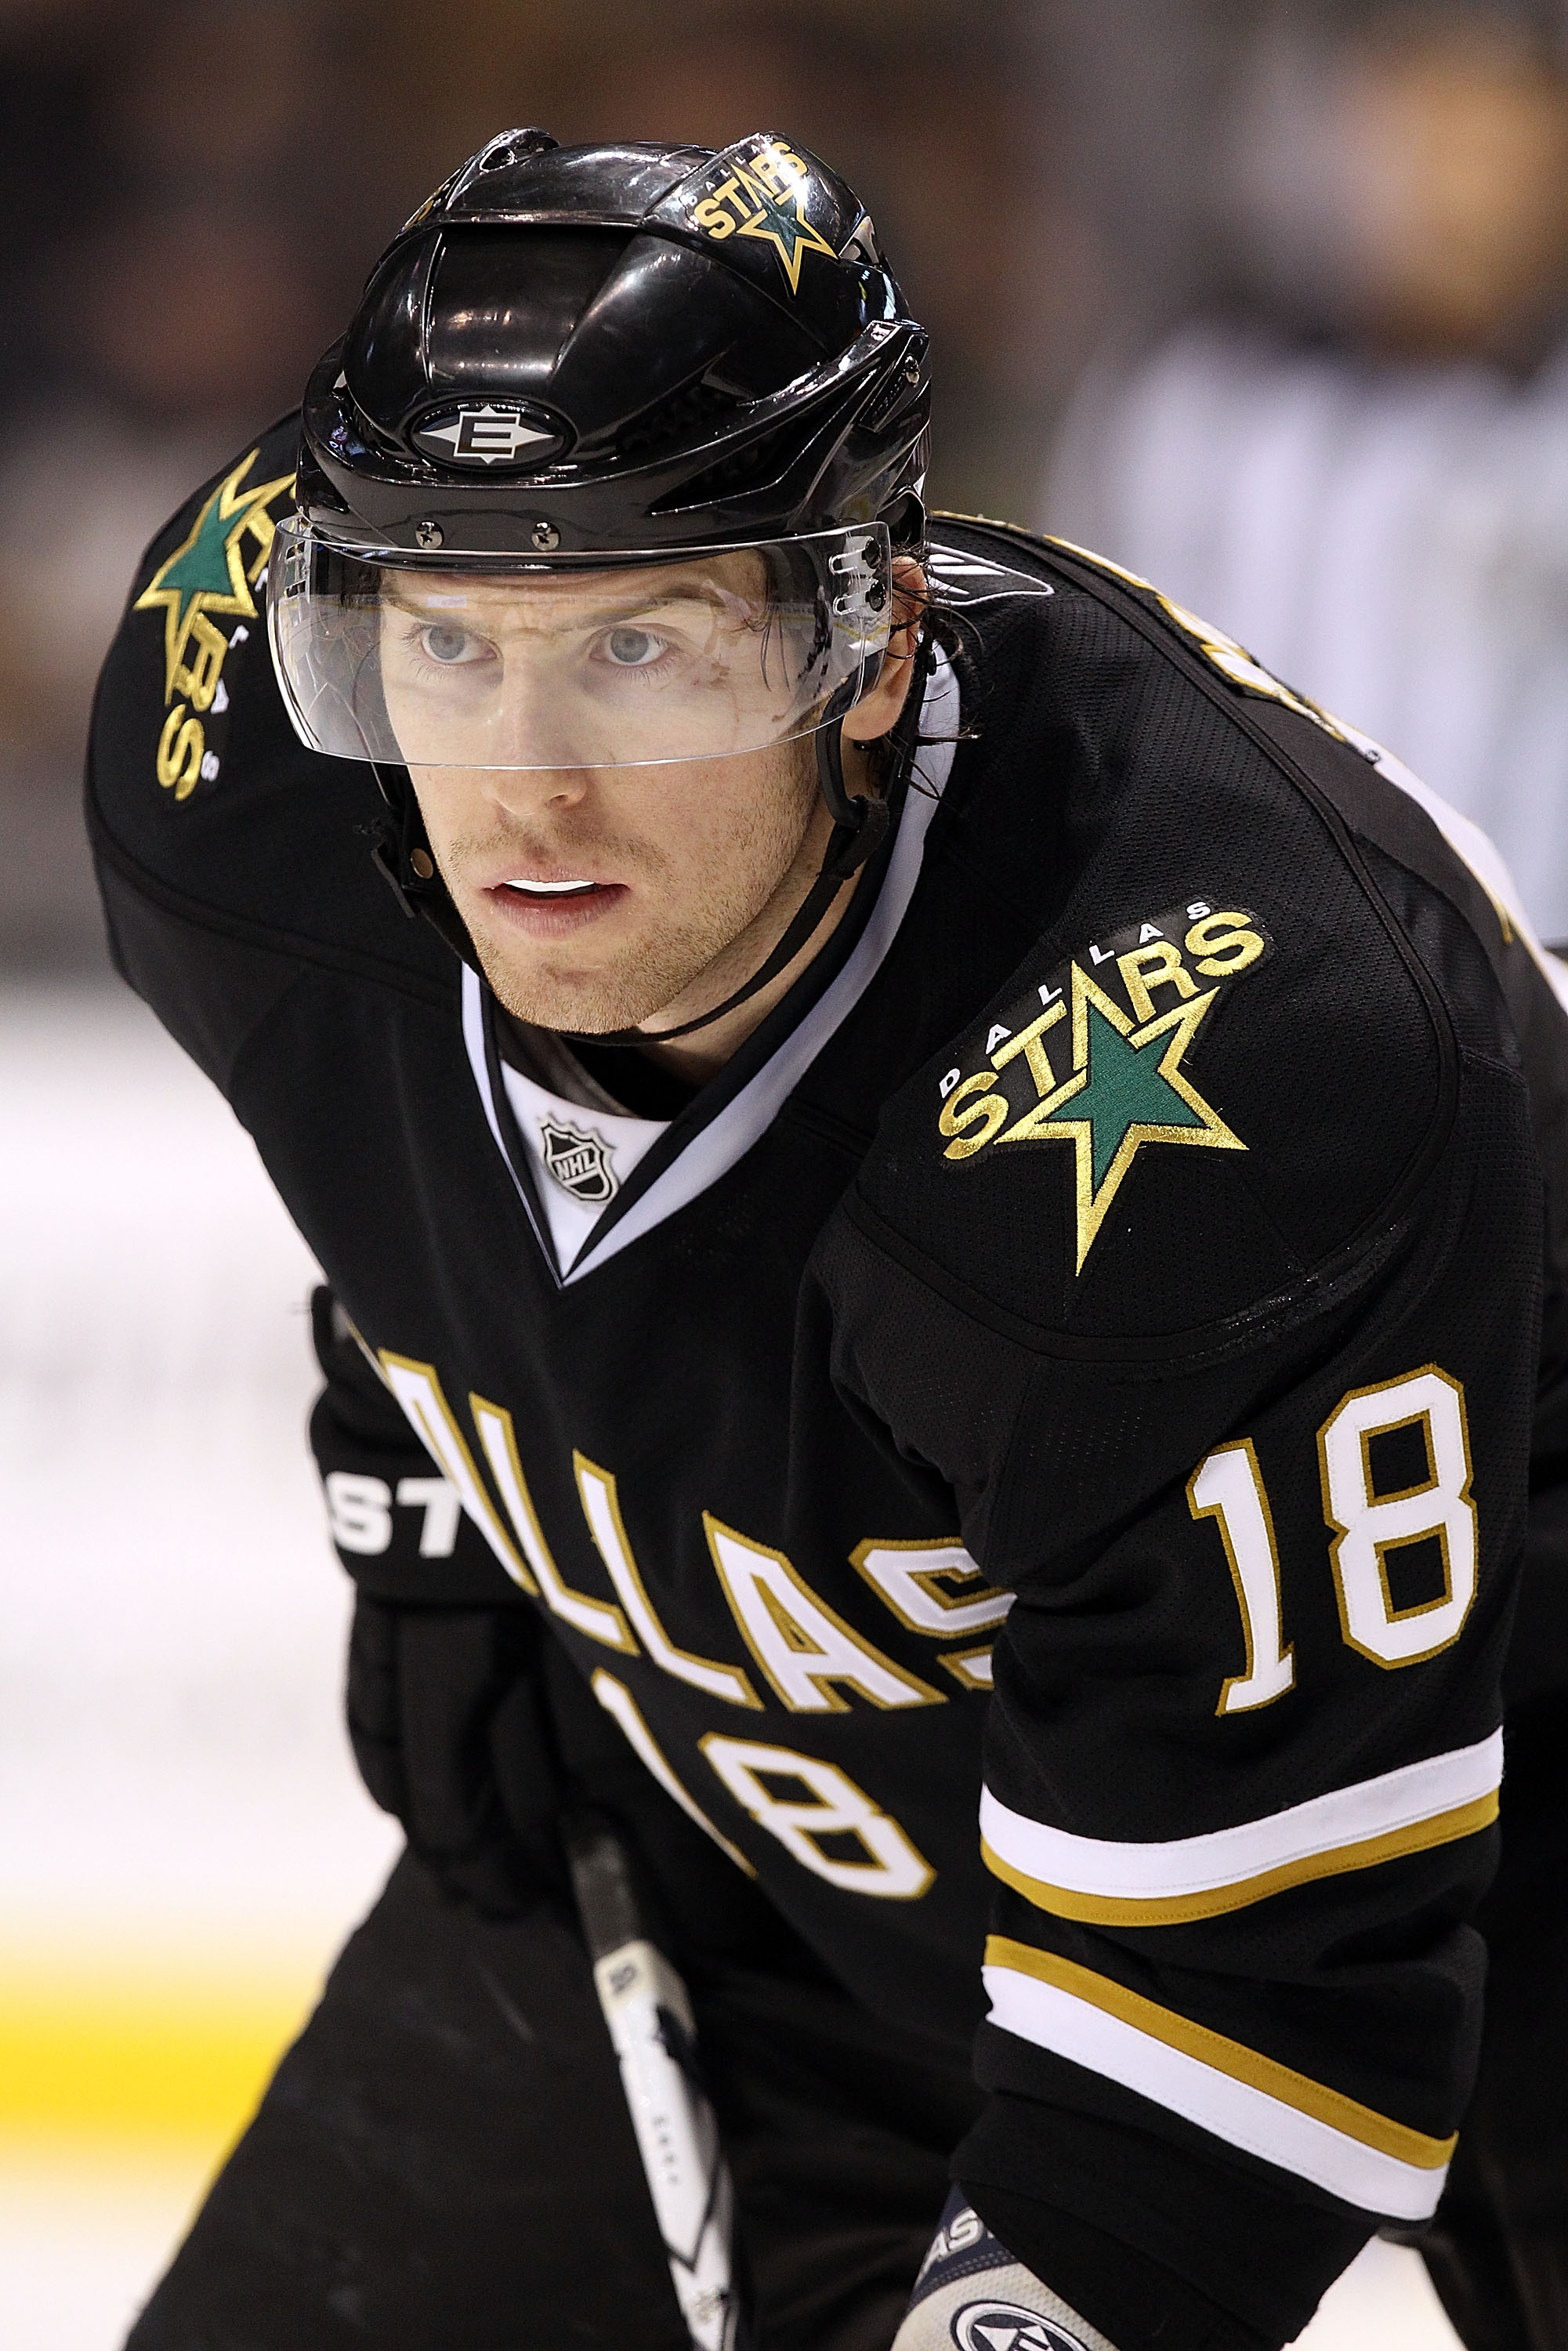 DALLAS, TX - JANUARY 15:  James Neal #18 of the Dallas Stars at American Airlines Center on January 15, 2011 in Dallas, Texas.  (Photo by Ronald Martinez/Getty Images)